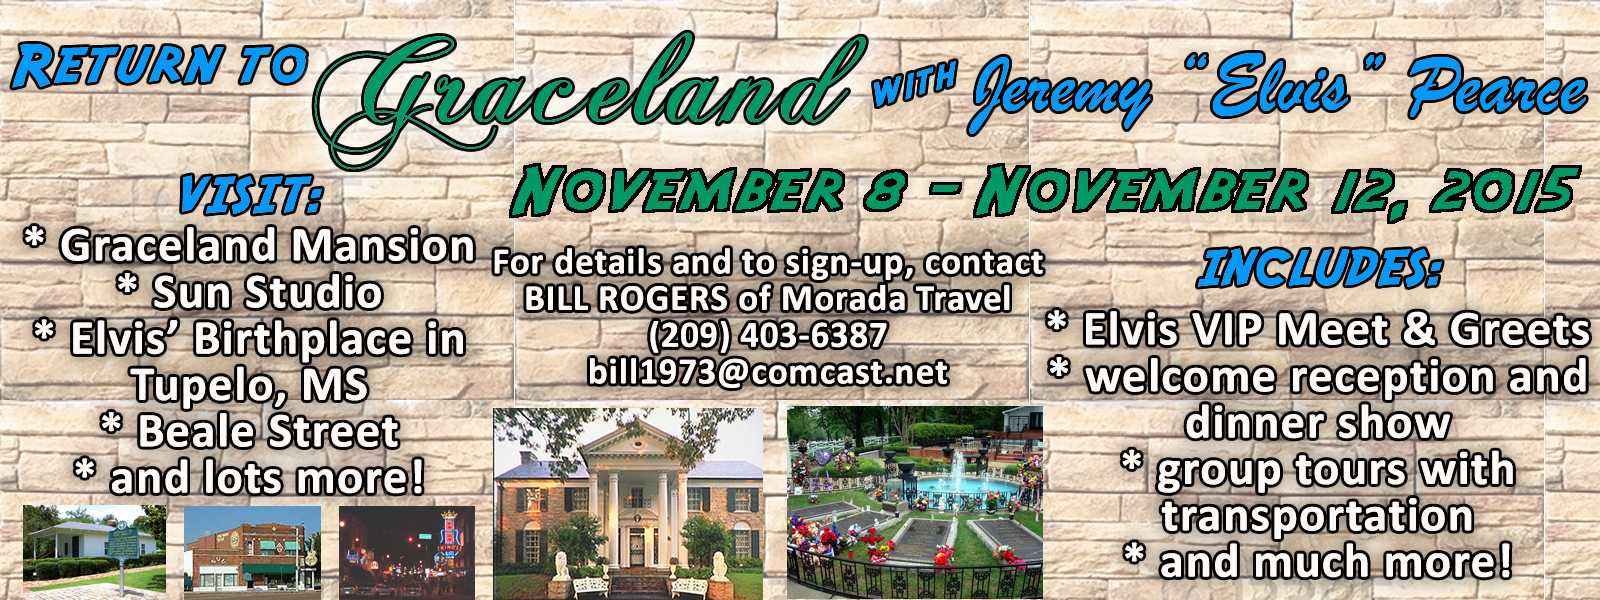 Graceland discount tickets coupons